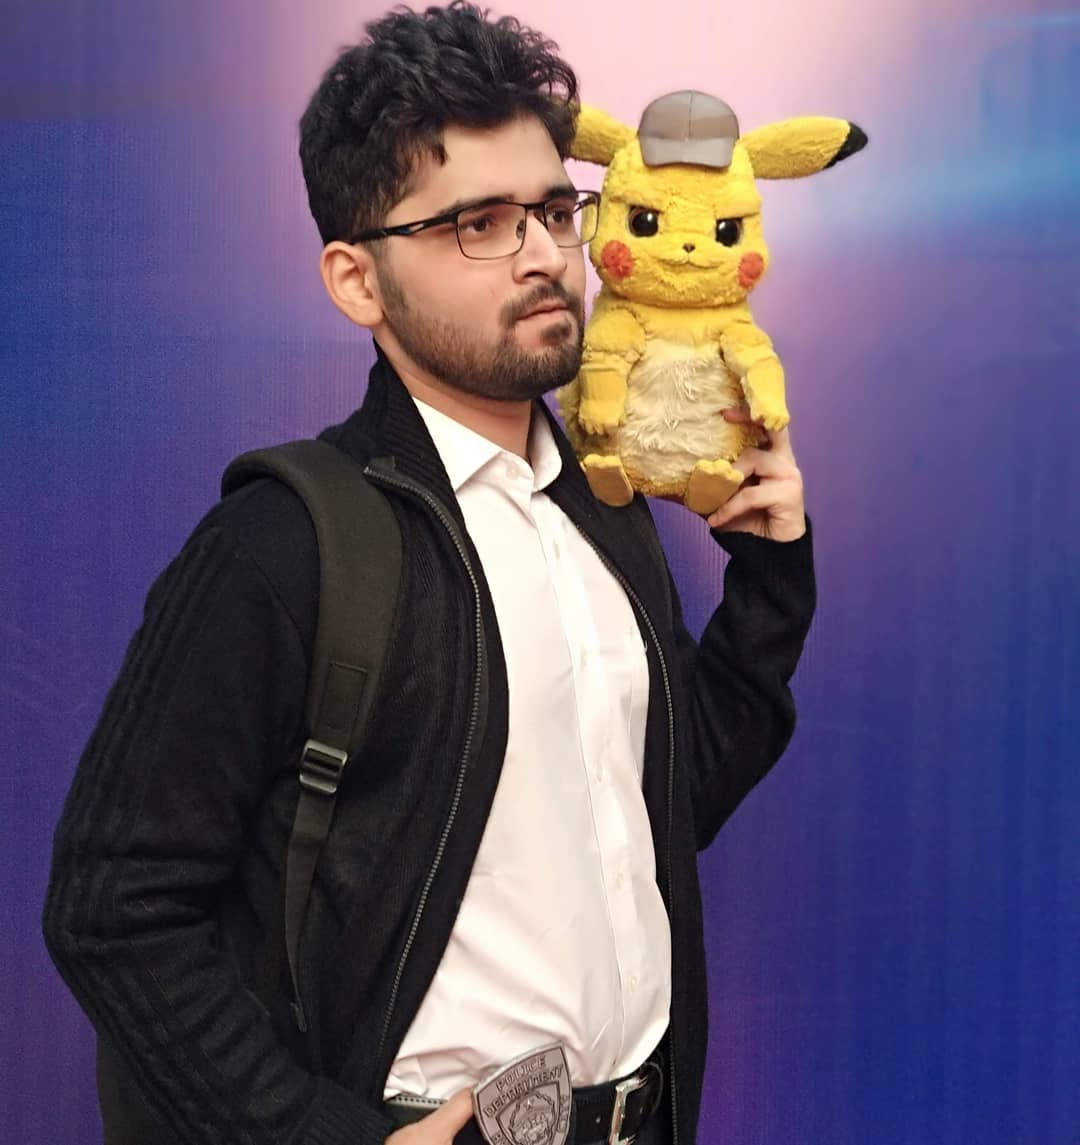 Shreyas M Creations On Twitter Detective Harry Goodman On Duty With Detective Pikachu Comiccon Comiccon2019 Comicconmumbai Detectivepikachu Smmcreations